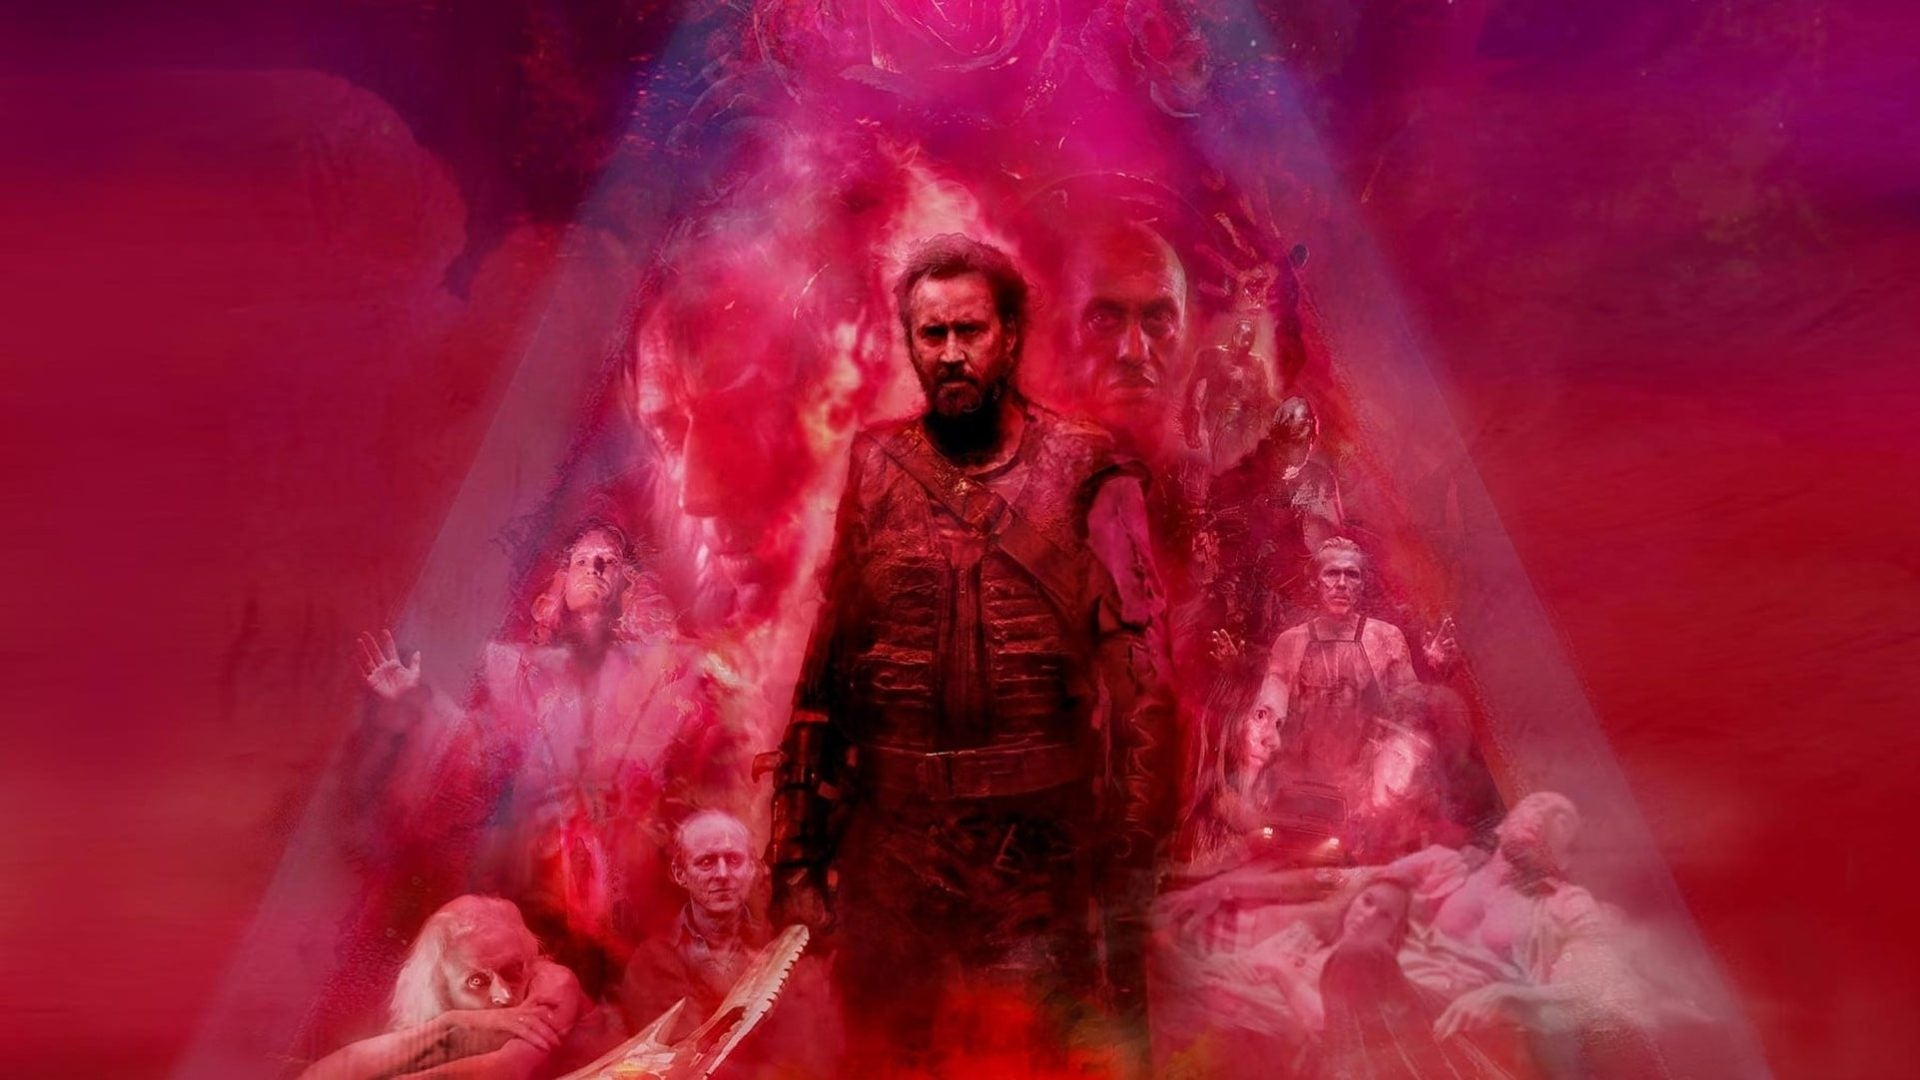 What We Liked (And What Bewildered Us) About Nic Cage's New Movie, Mandy